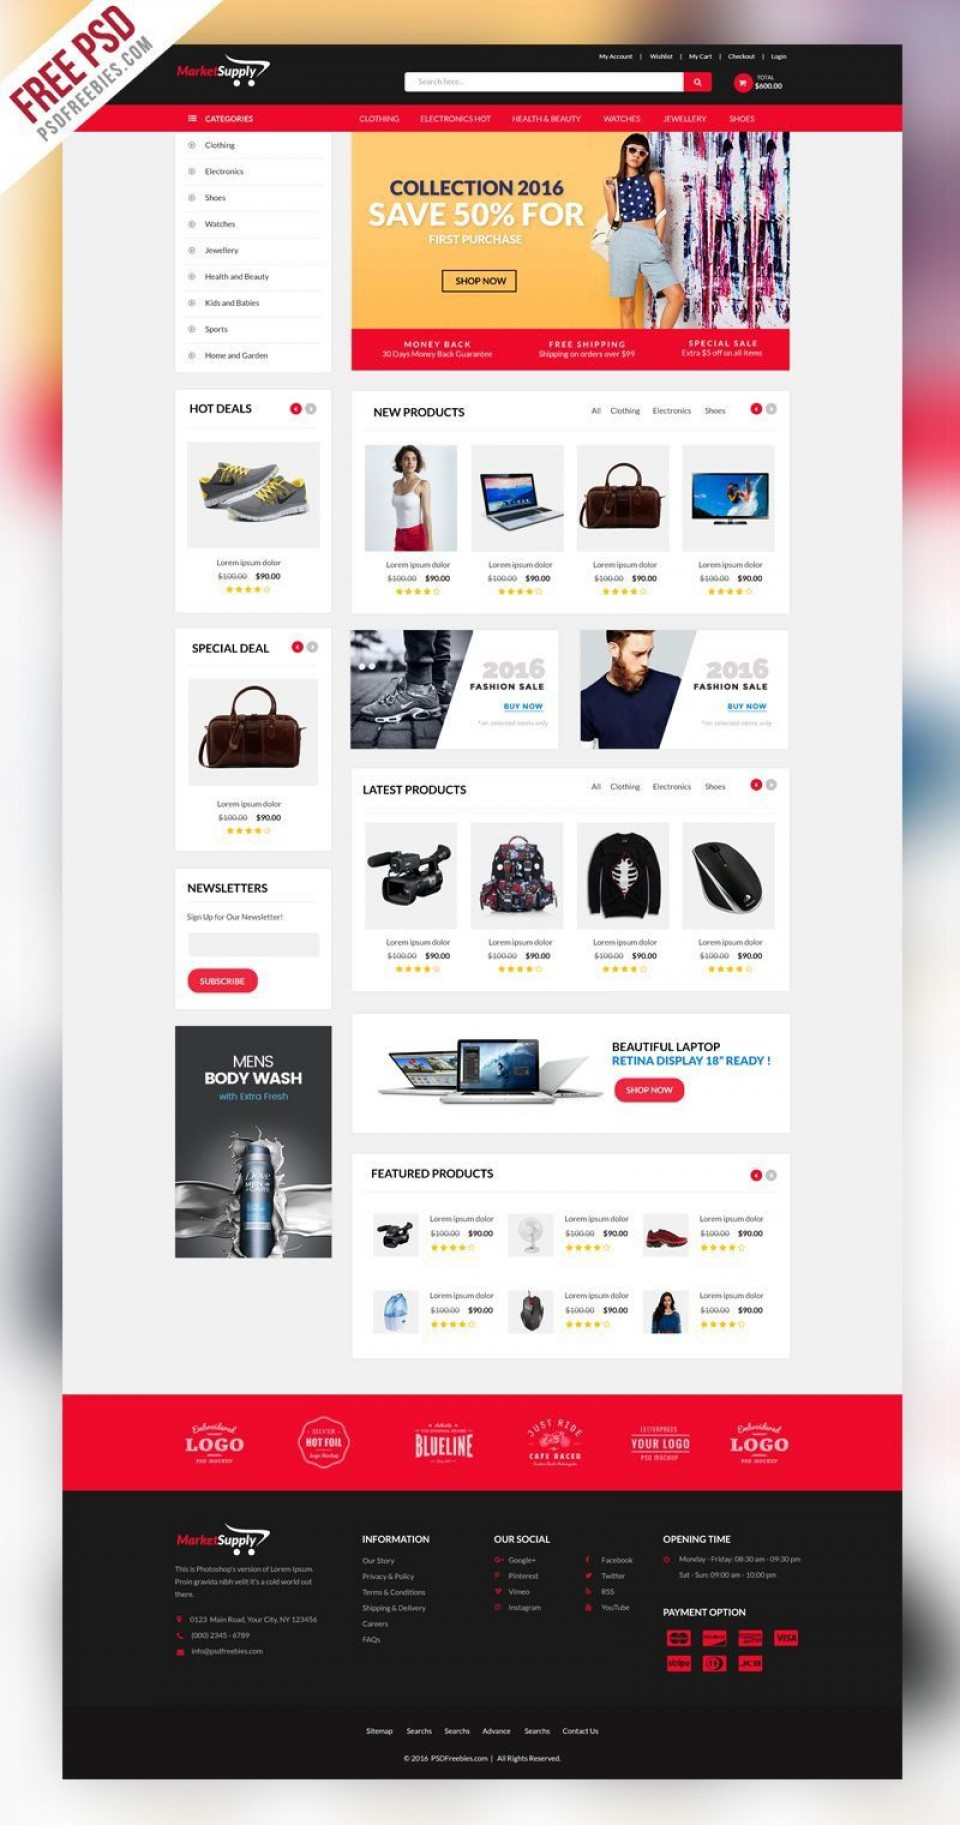 006 Amazing Ecommerce Website Template Html Free Download Design  Bootstrap 4 Responsive With Cs Jquery960